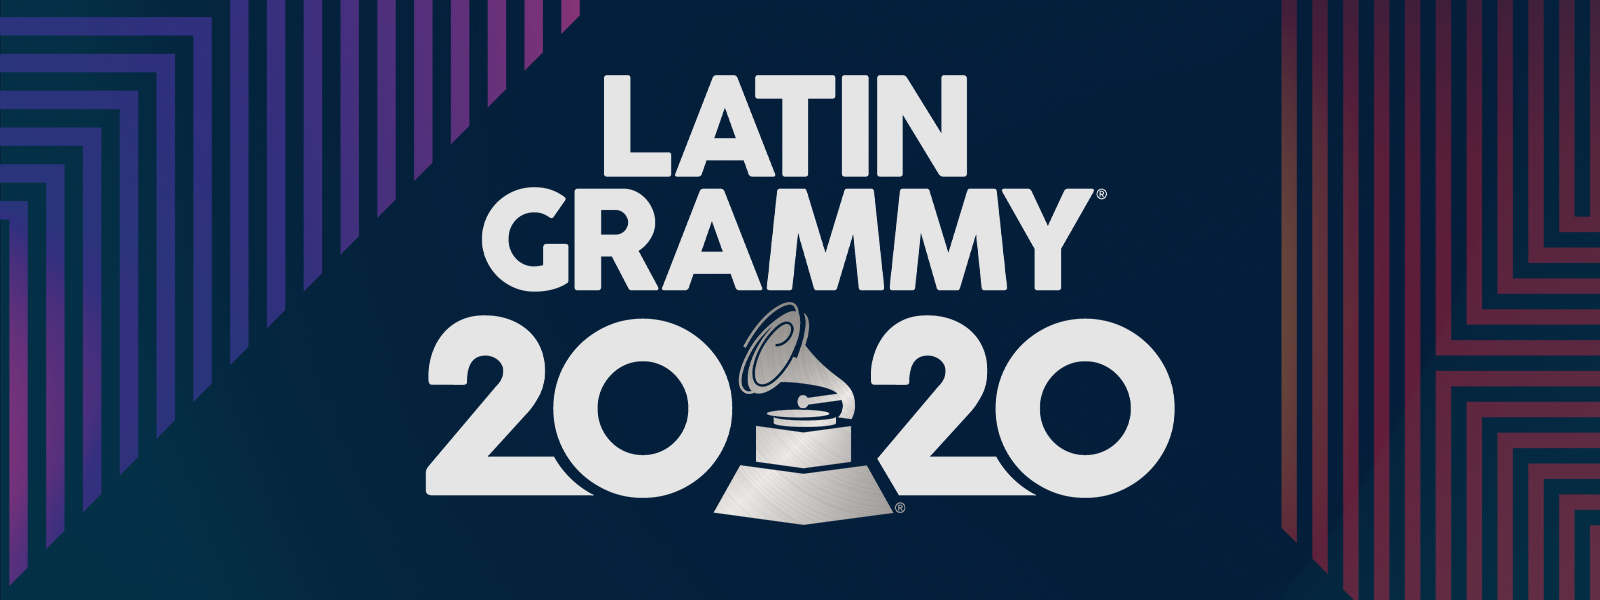 2020 Latin GRAMMY Awards Announce Winners